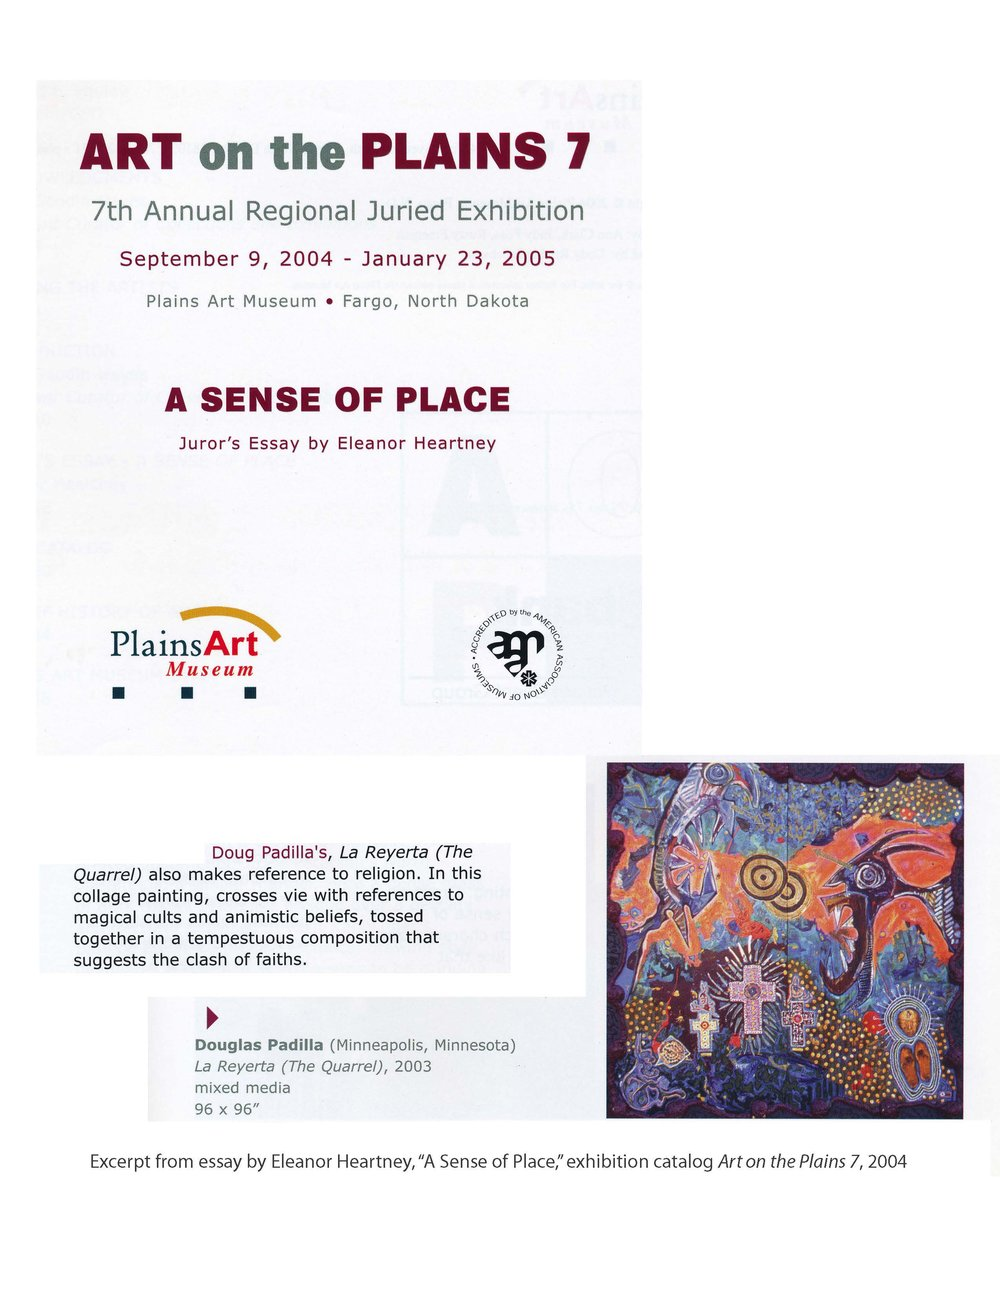 Art on the Plains 7 catalog excerpt.jpg